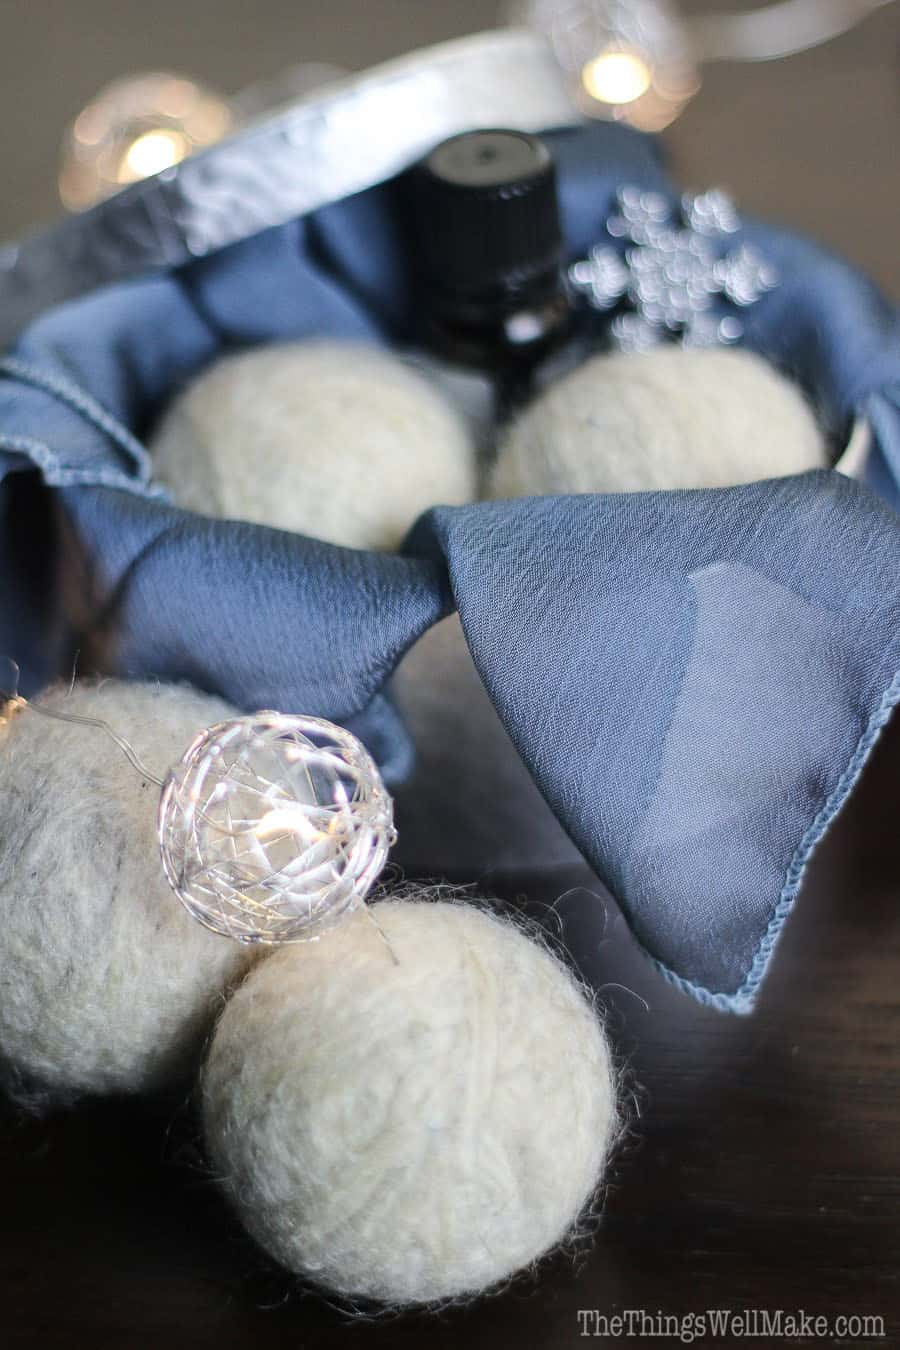 DIY wool dryer balls are easy to make, and are a simple, ecological way to soften clothes and reduce dryer time and static cling.